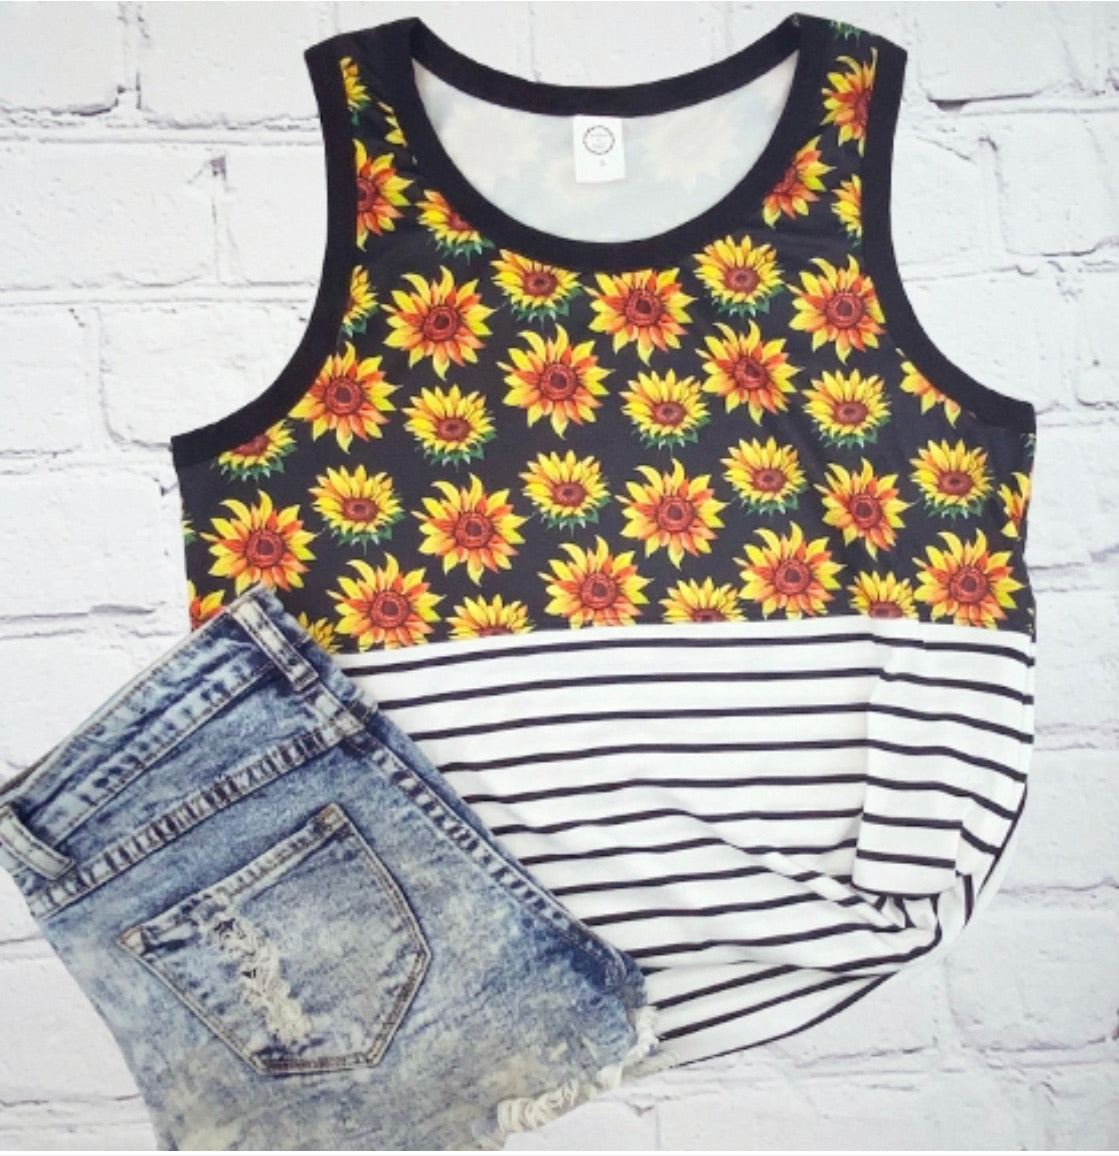 Sunflower and striped tank top